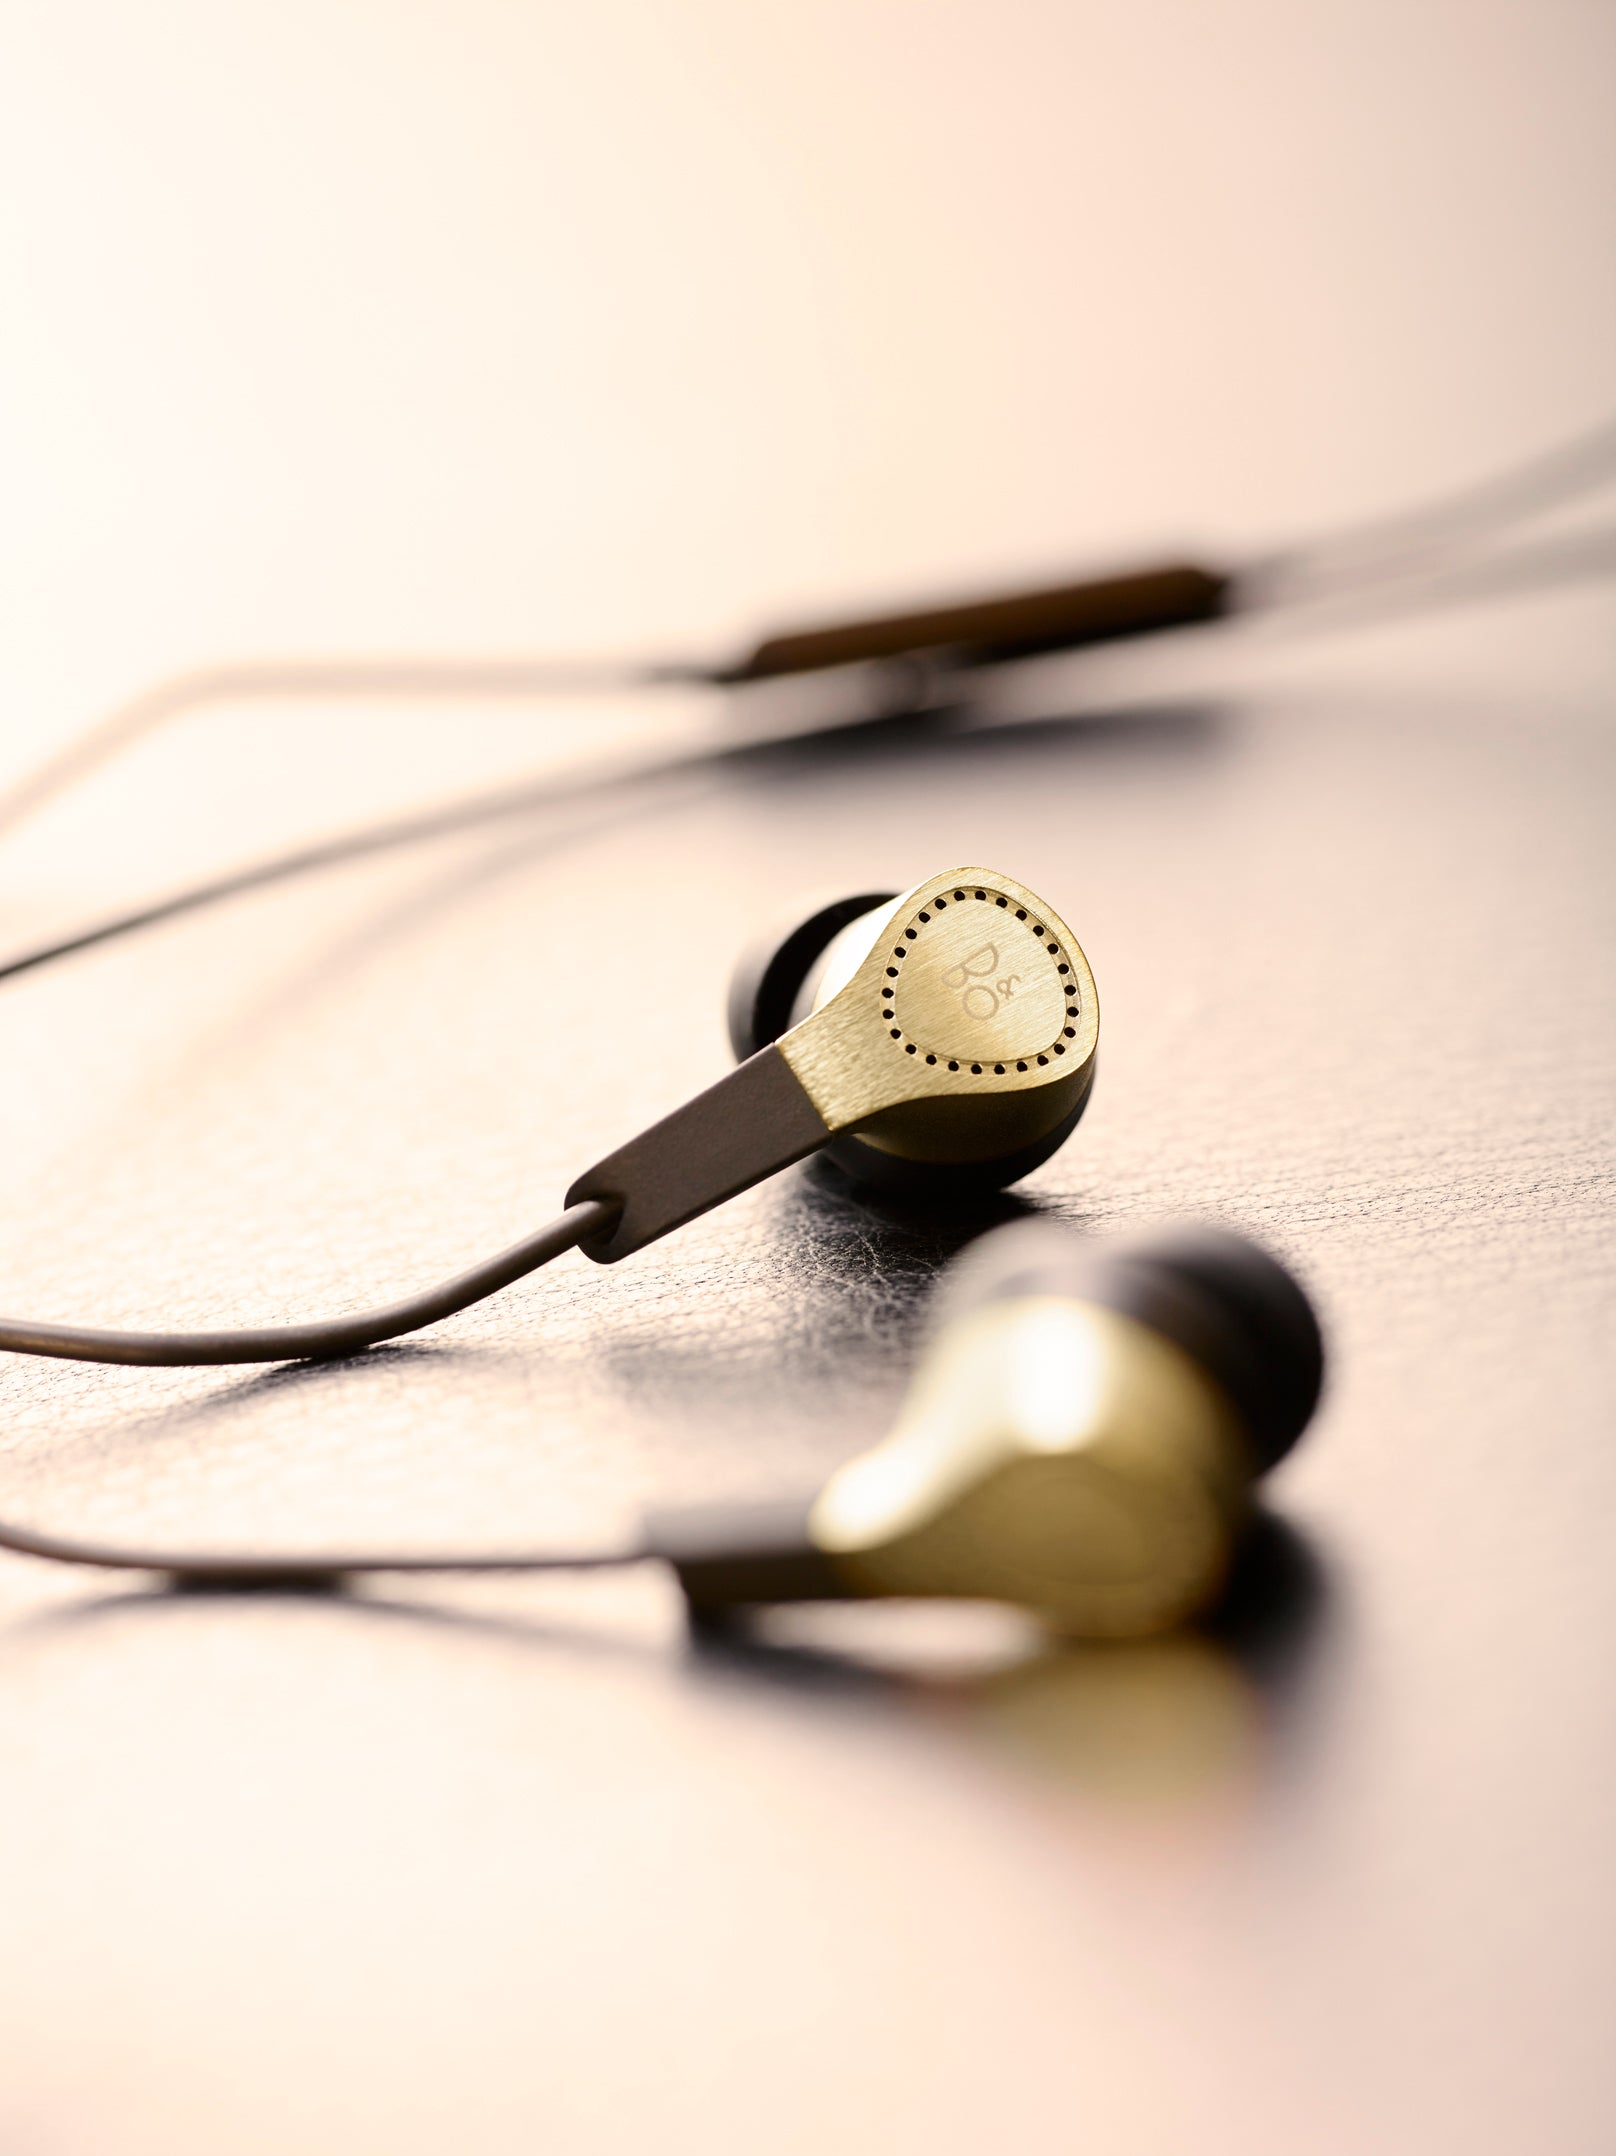 Beoplay H3 Earphones- 2nd Generation (special offer)